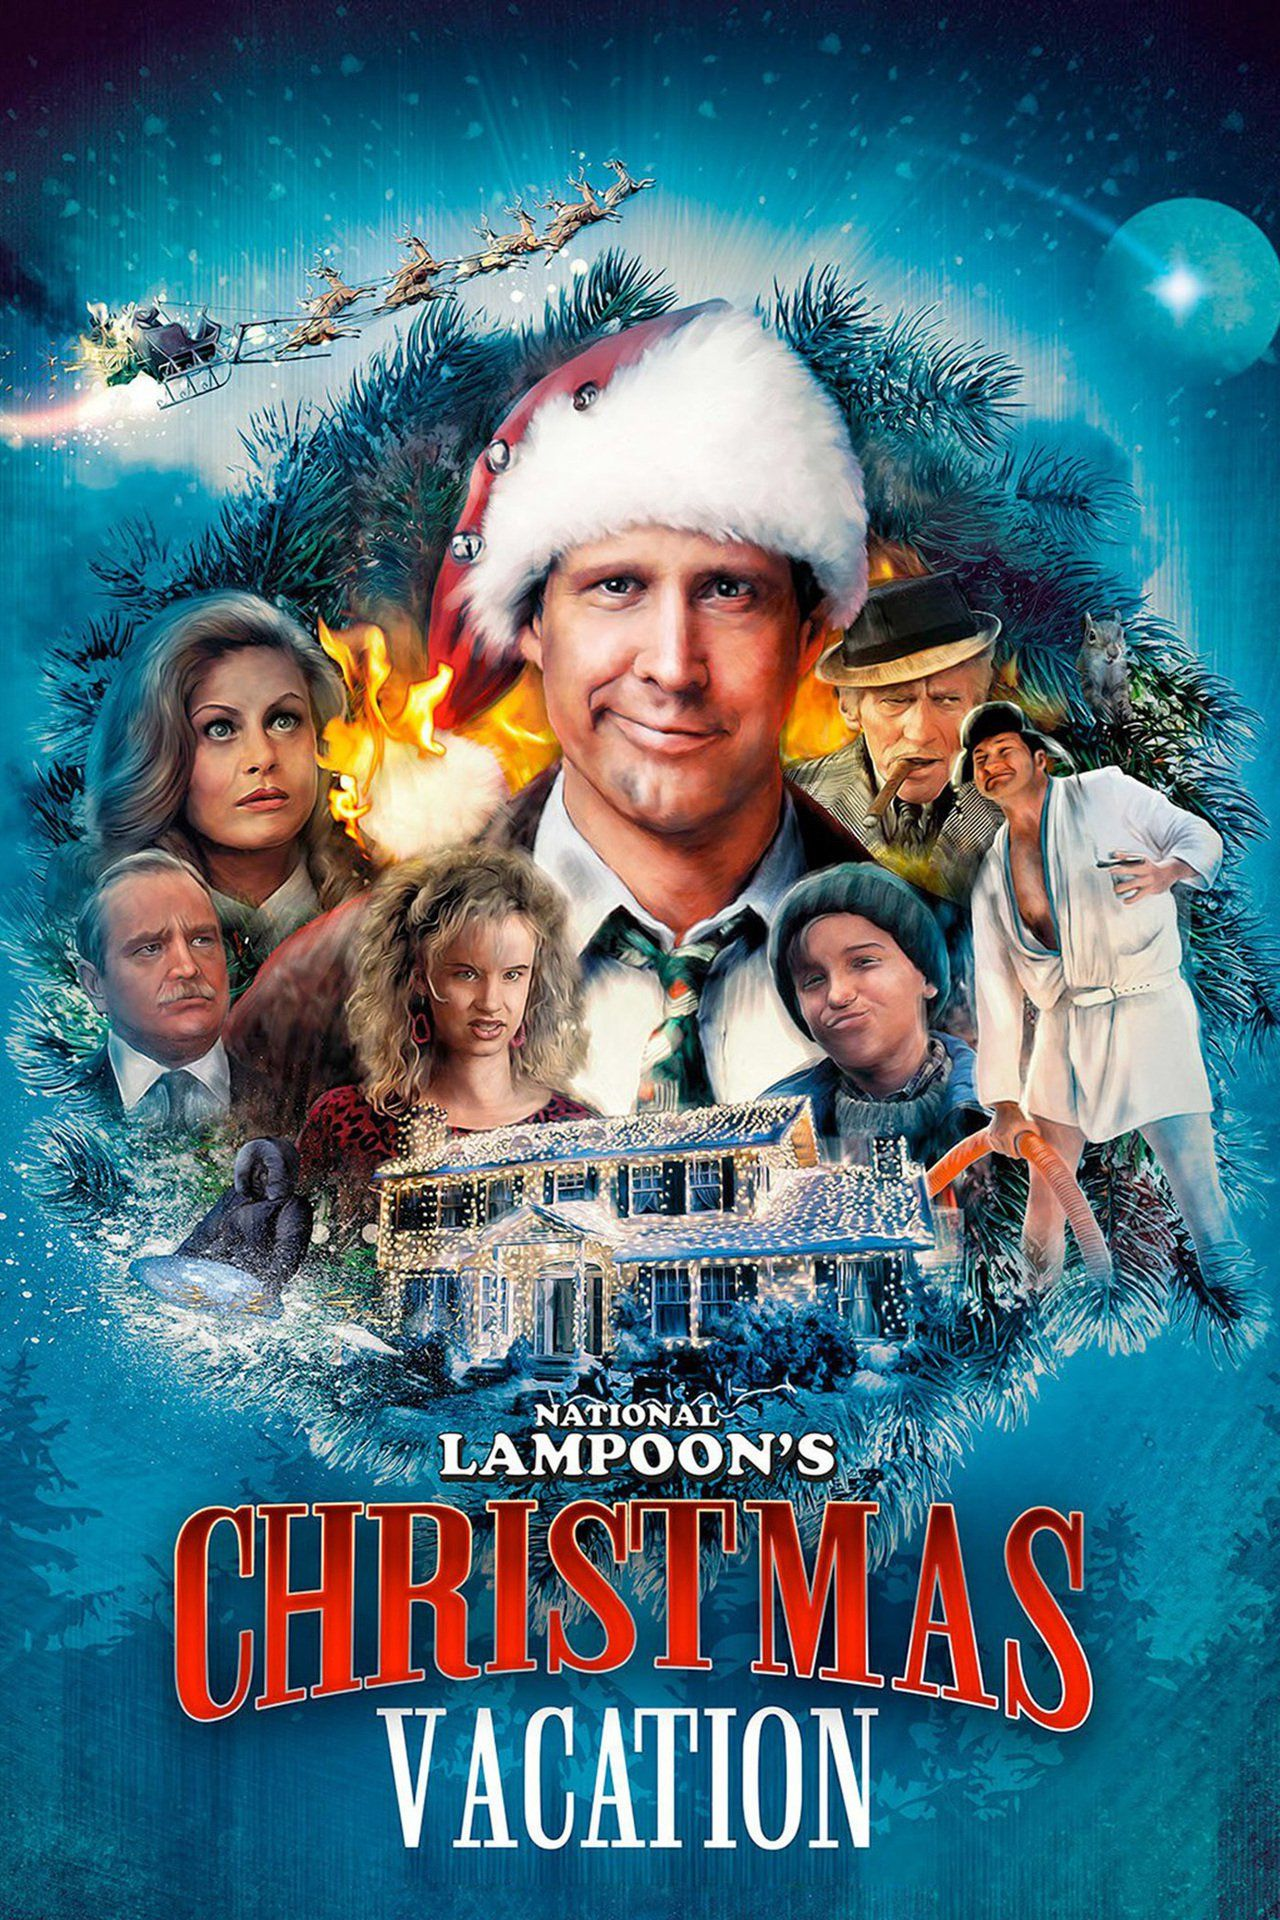 Http://goodwatch.co/item/National-Lampoon's-Christmas